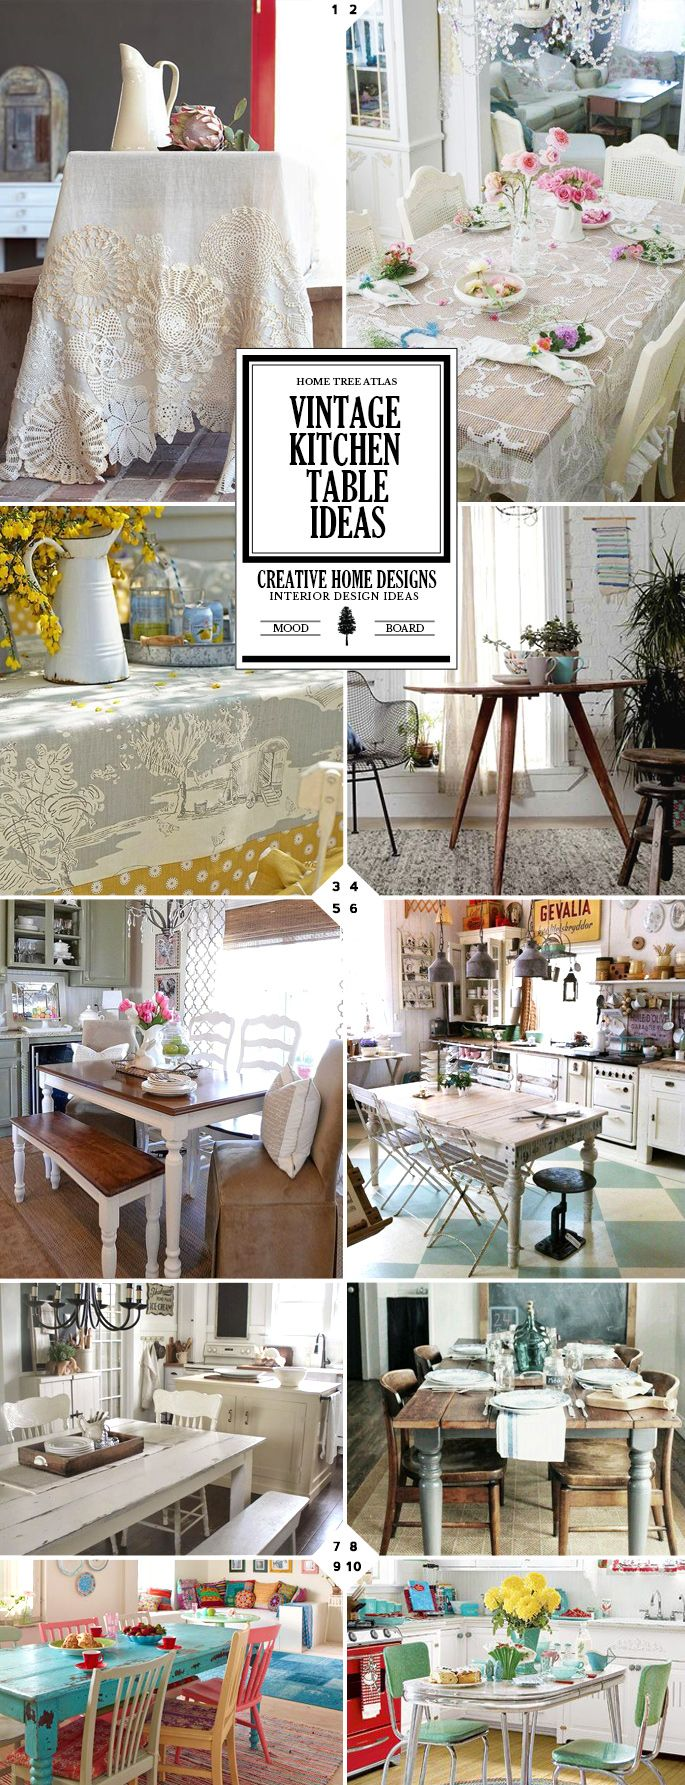 Ideas for vintage kitchen table and chairs, and table decor ideas